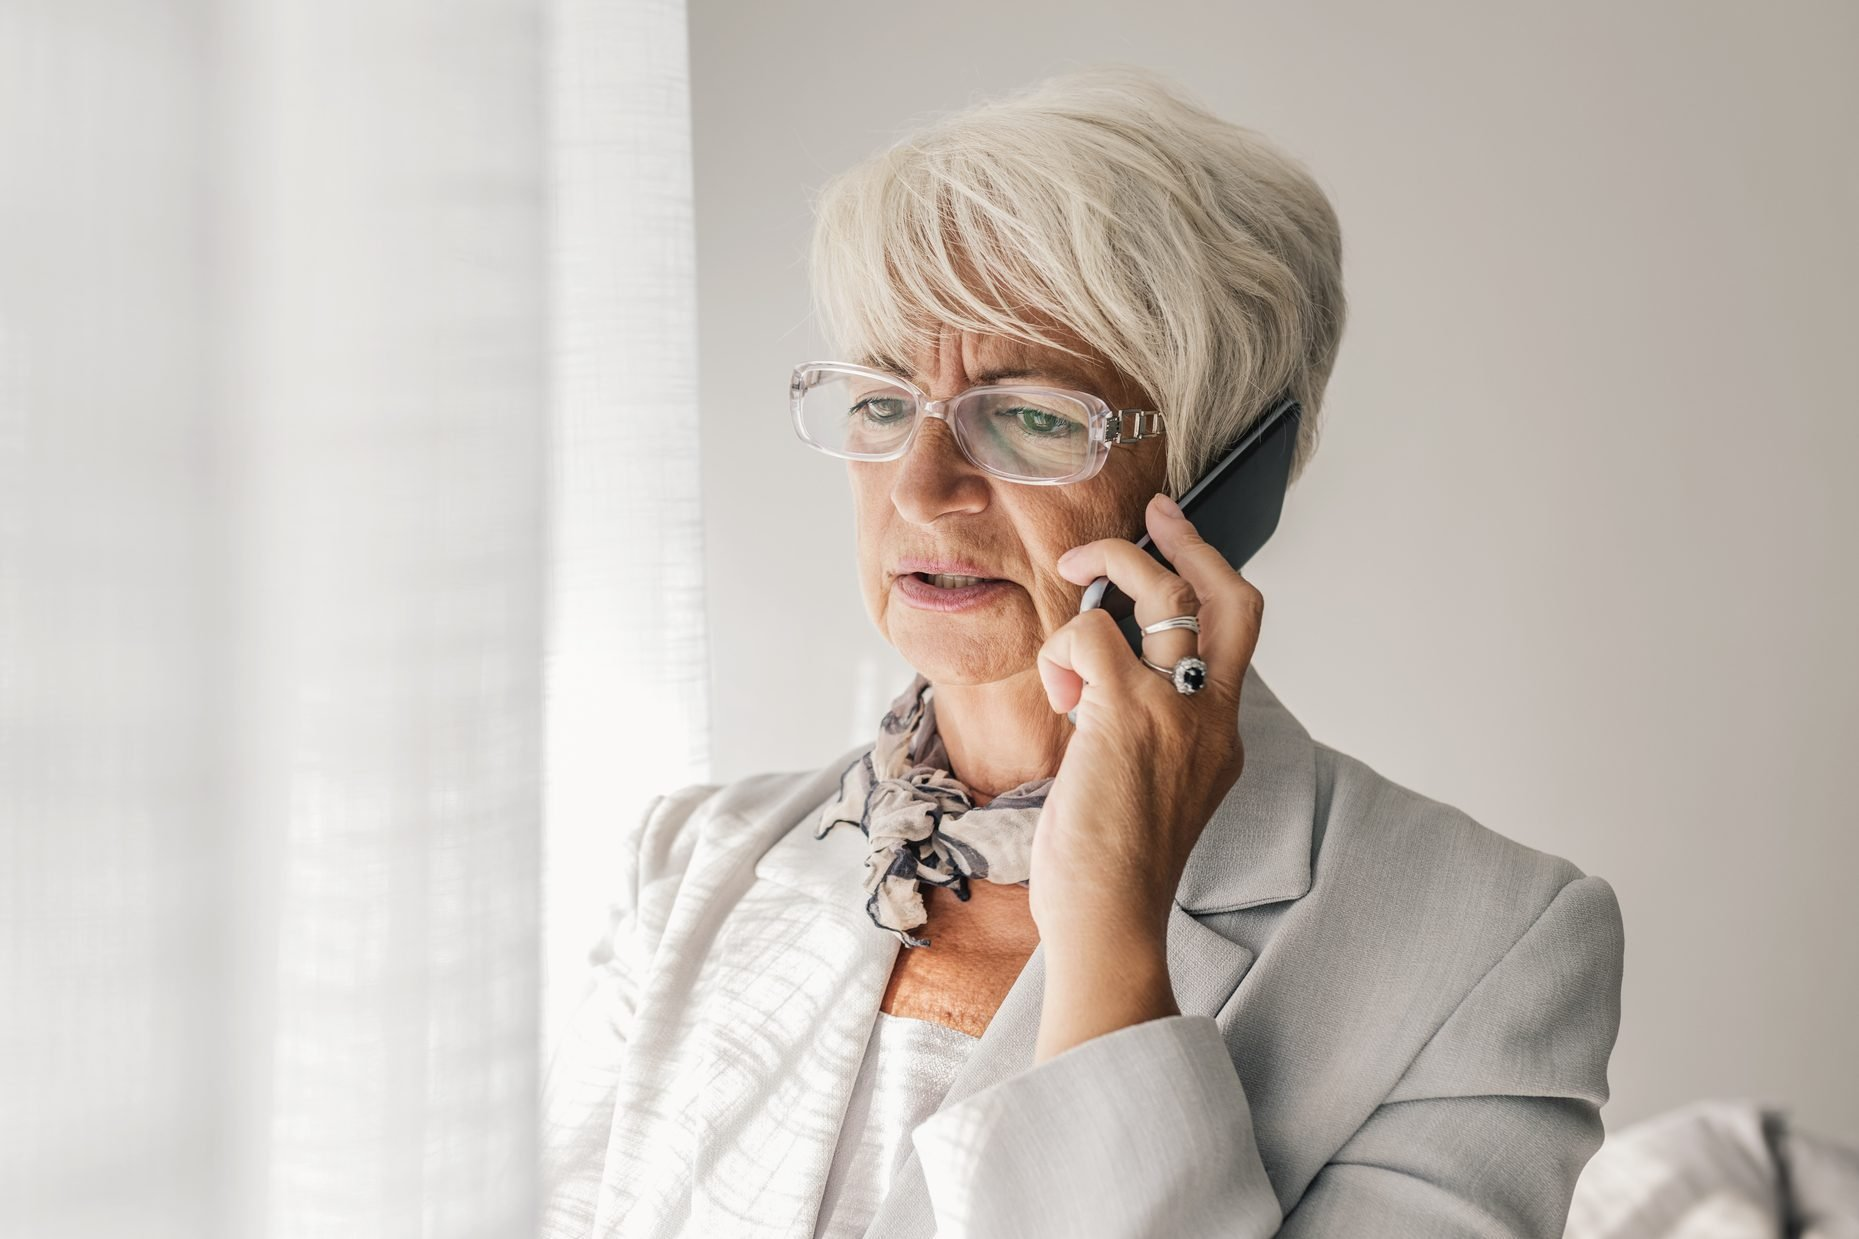 BRN FOCUS | TELEMARKETERS AND PERSONALIZED ADS